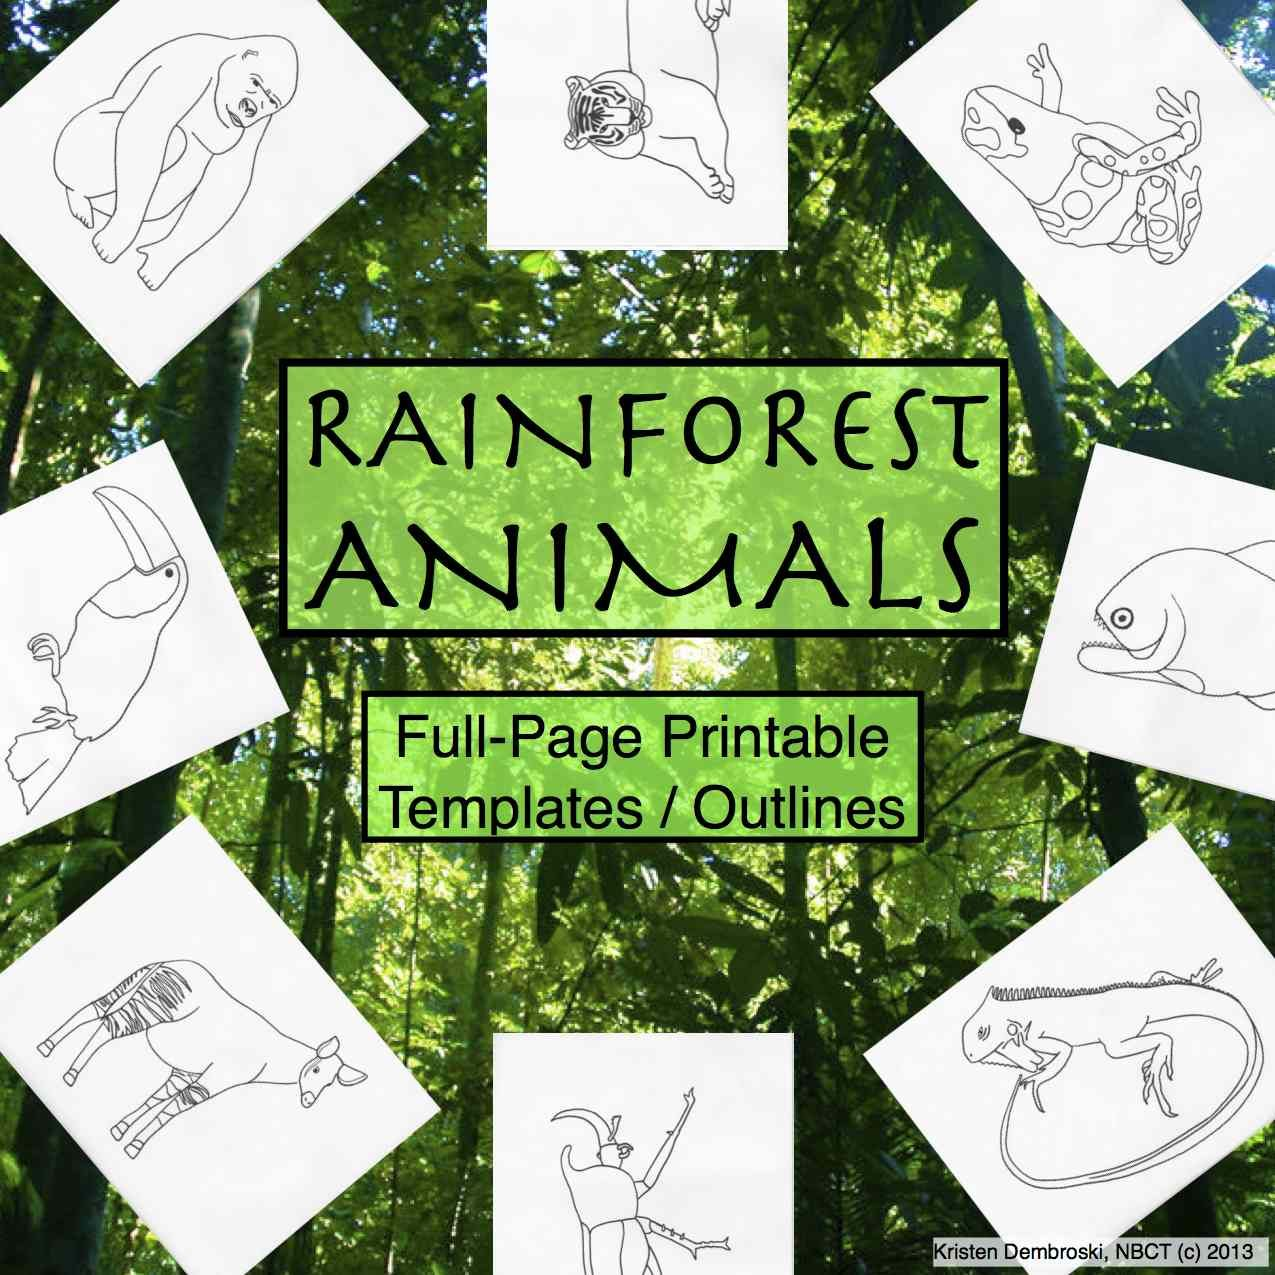 This Is A Pack Of 30 Blank Hand Drawn Rainforest Animals They Are Full Page Printable